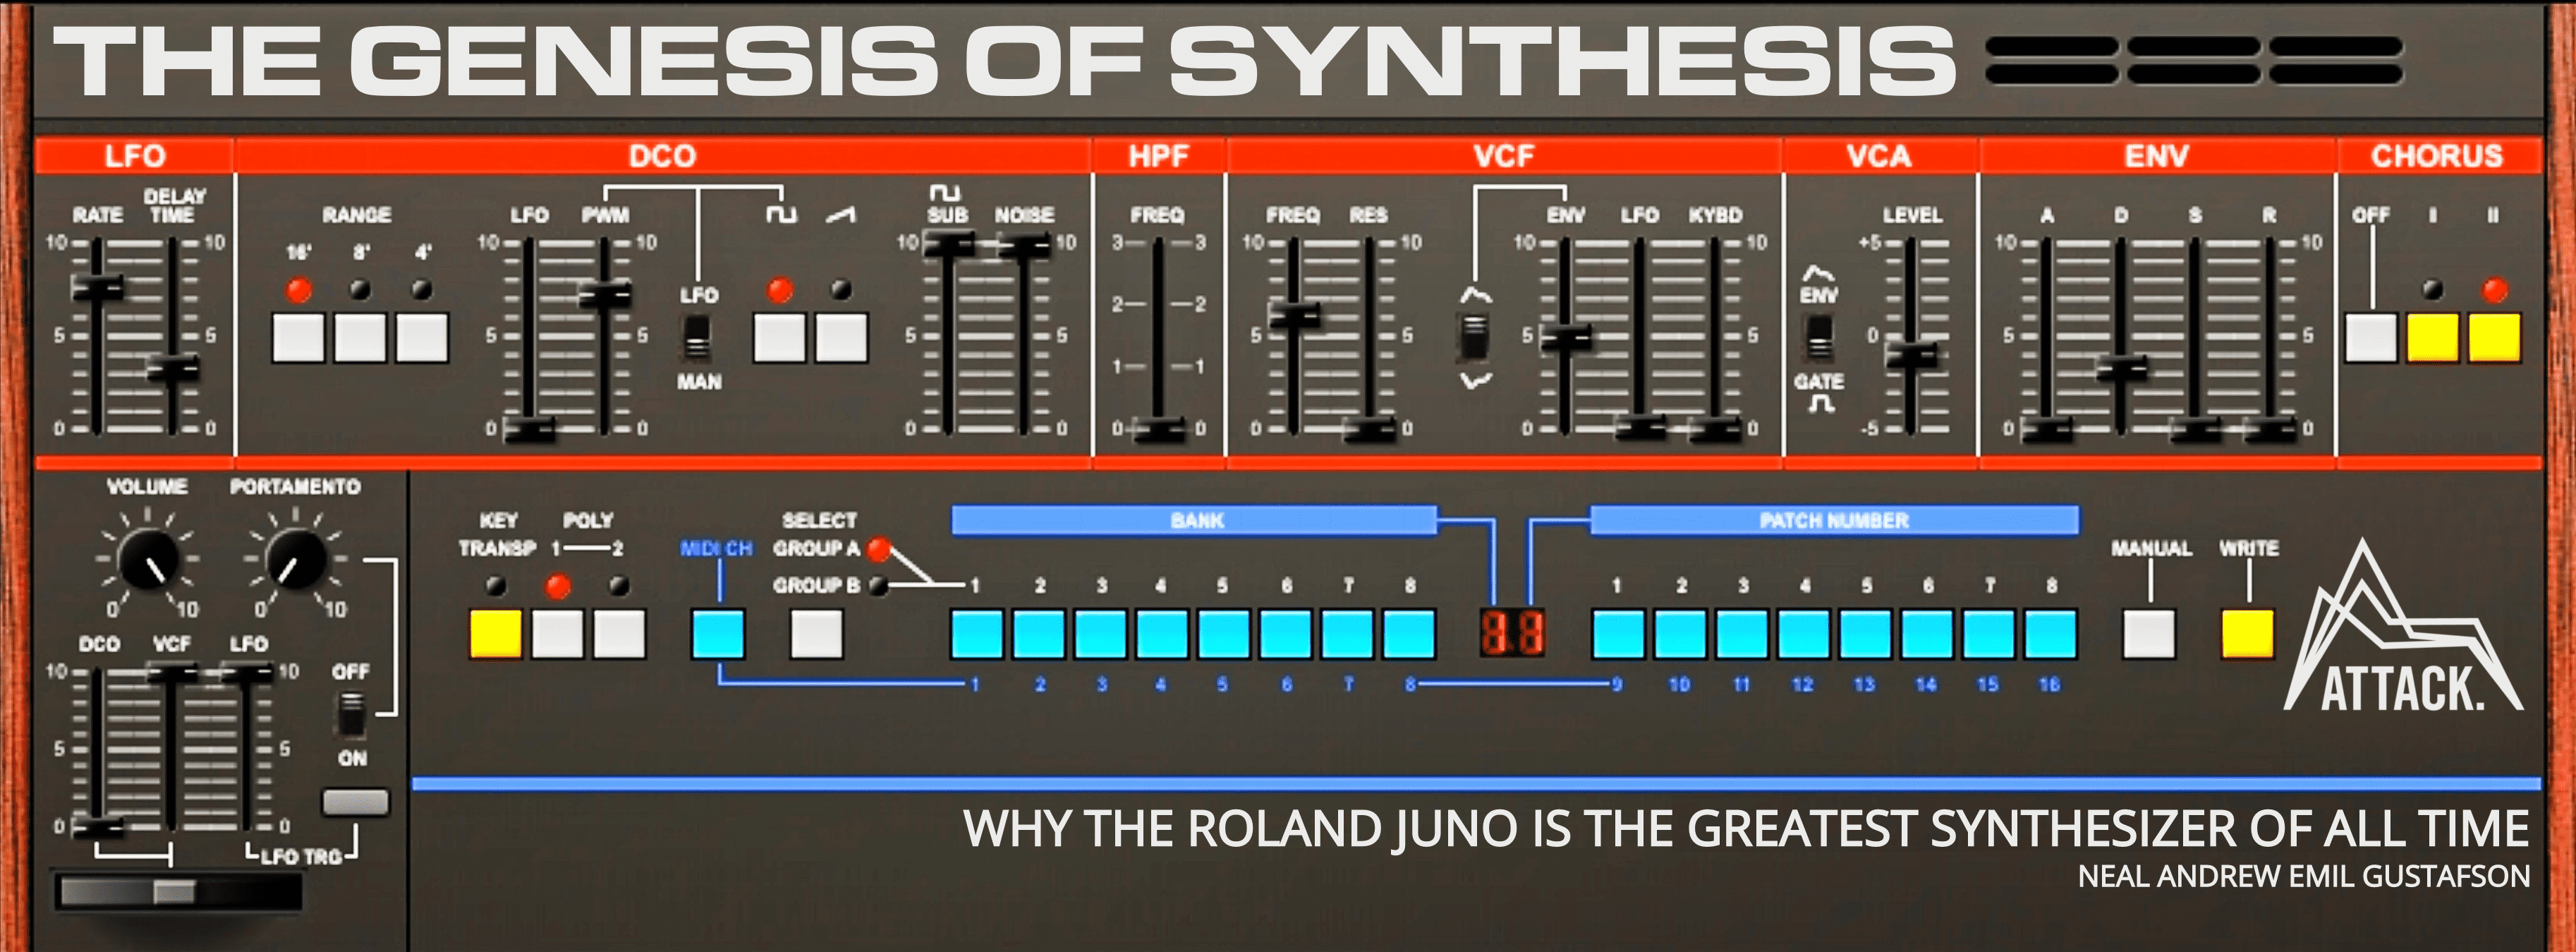 The Genesis of Synthesis _ 10 Reasons Why The Roland Juno Is The Greatest Synthesizer Of All Time - By Neal Gustafson (1)Long Reads